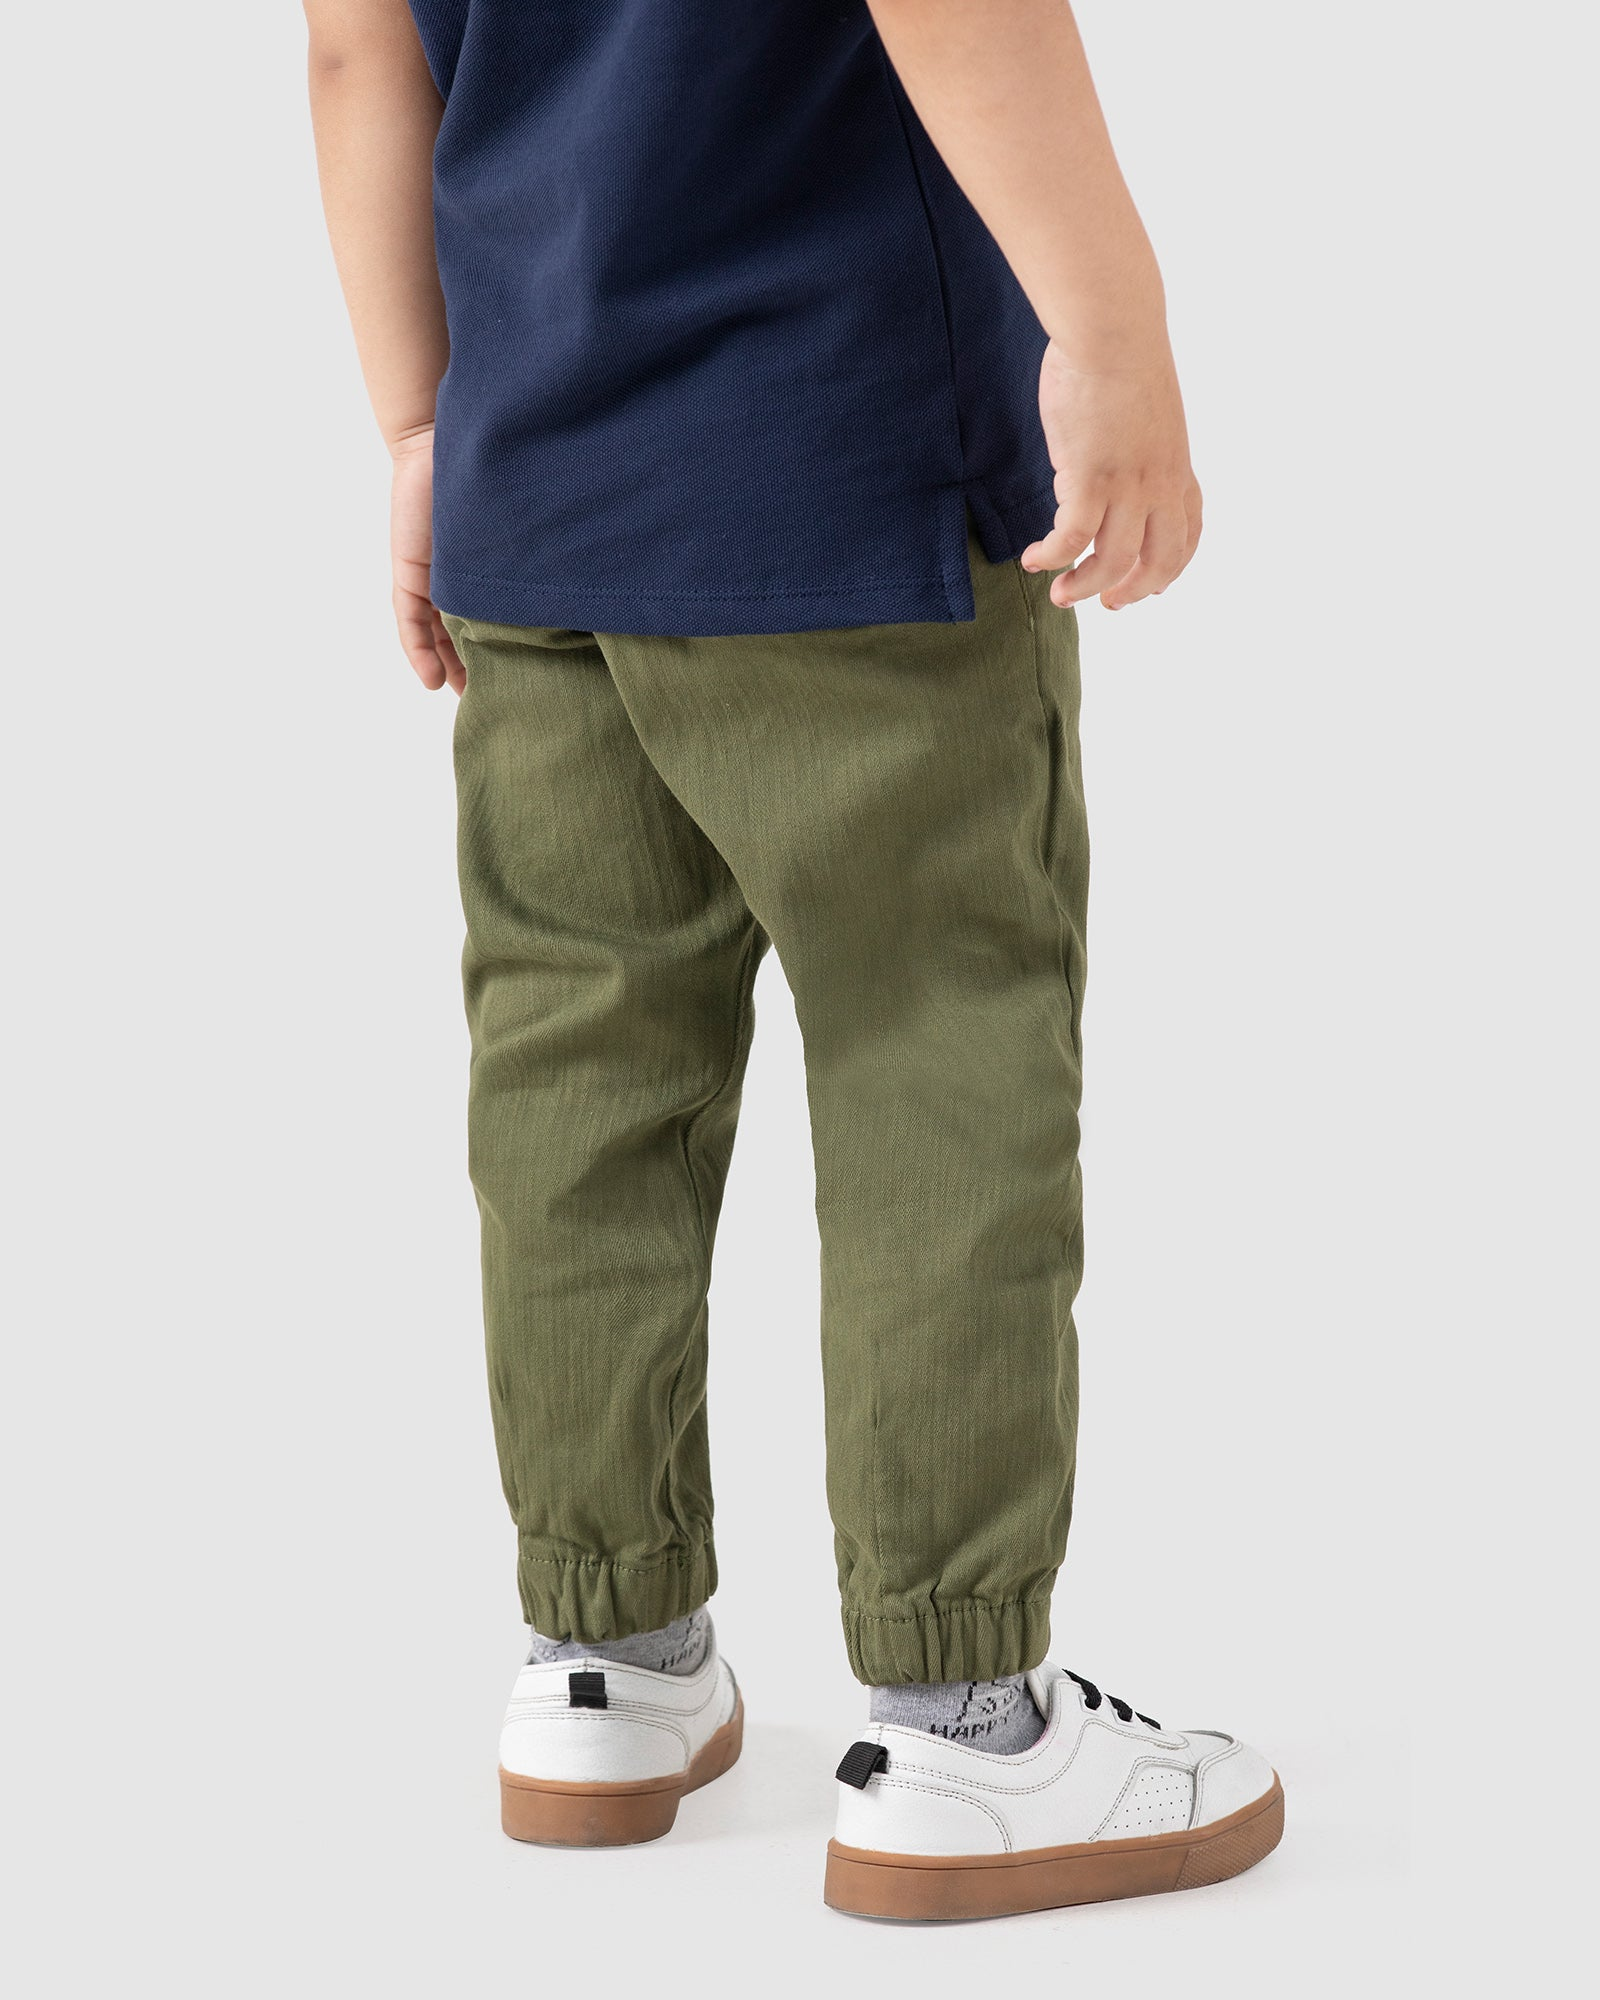 Basic casual trouser